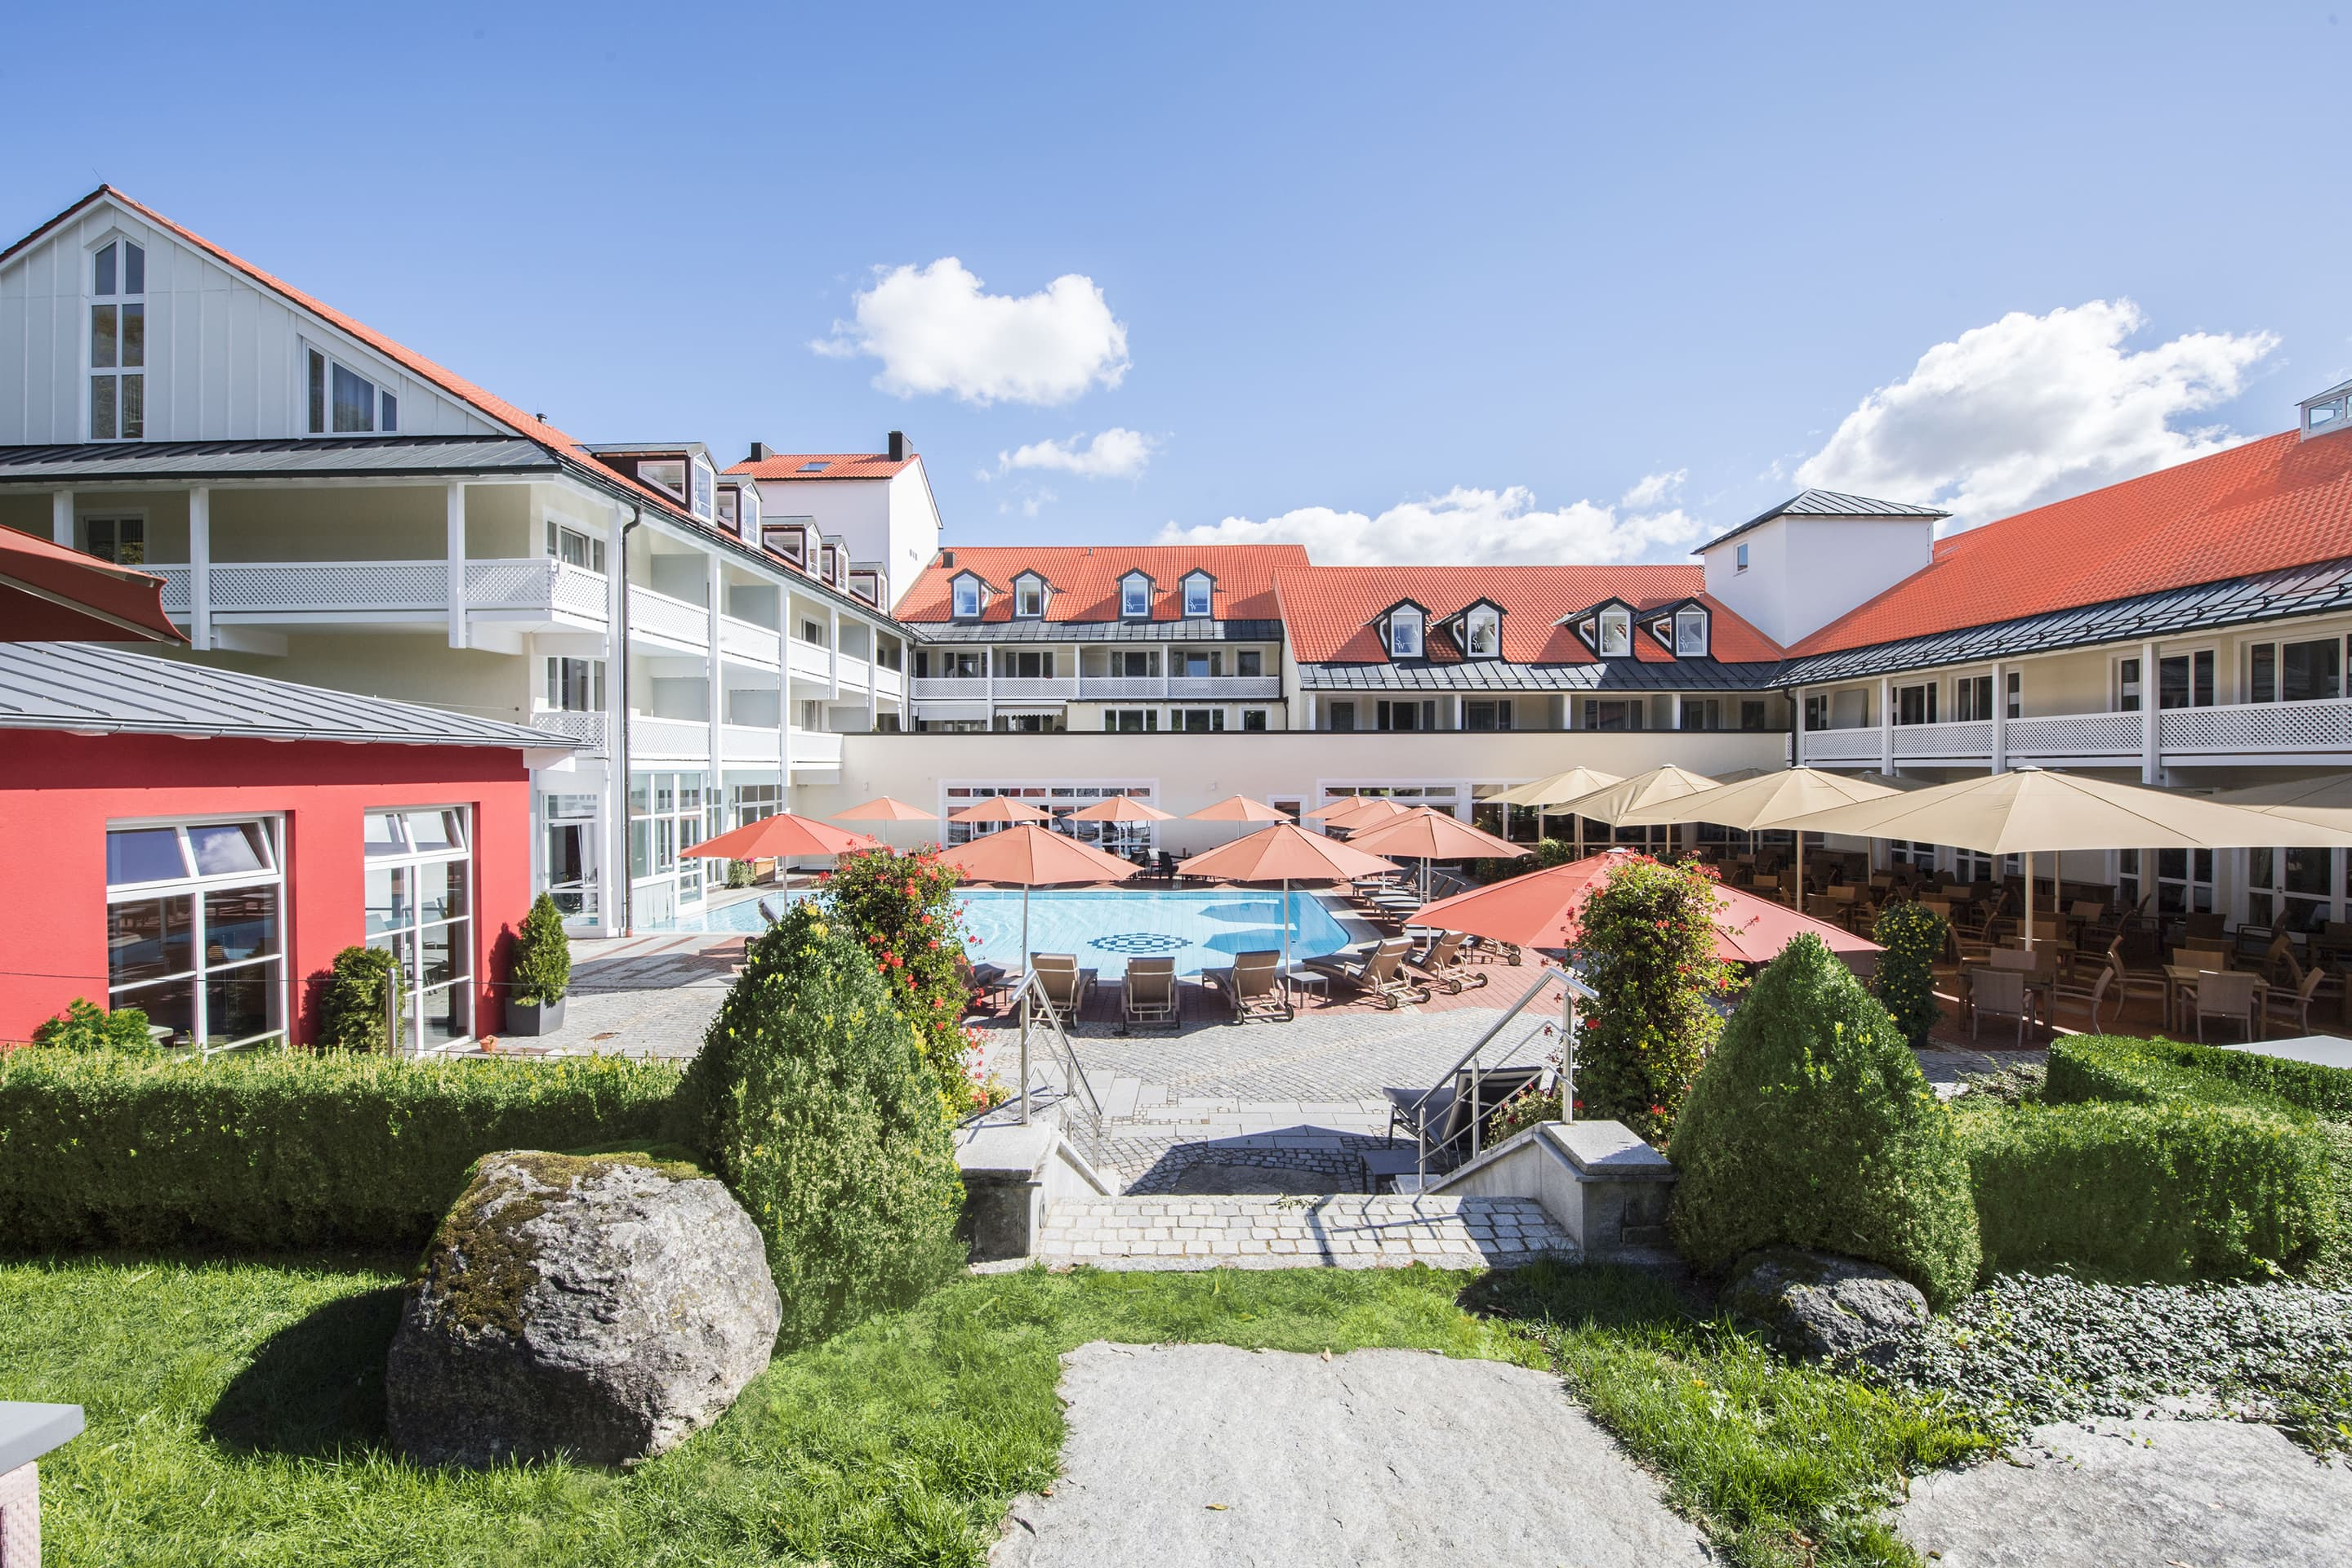 Hotel St Wolfgang In Bad Griesbach Im Rottal